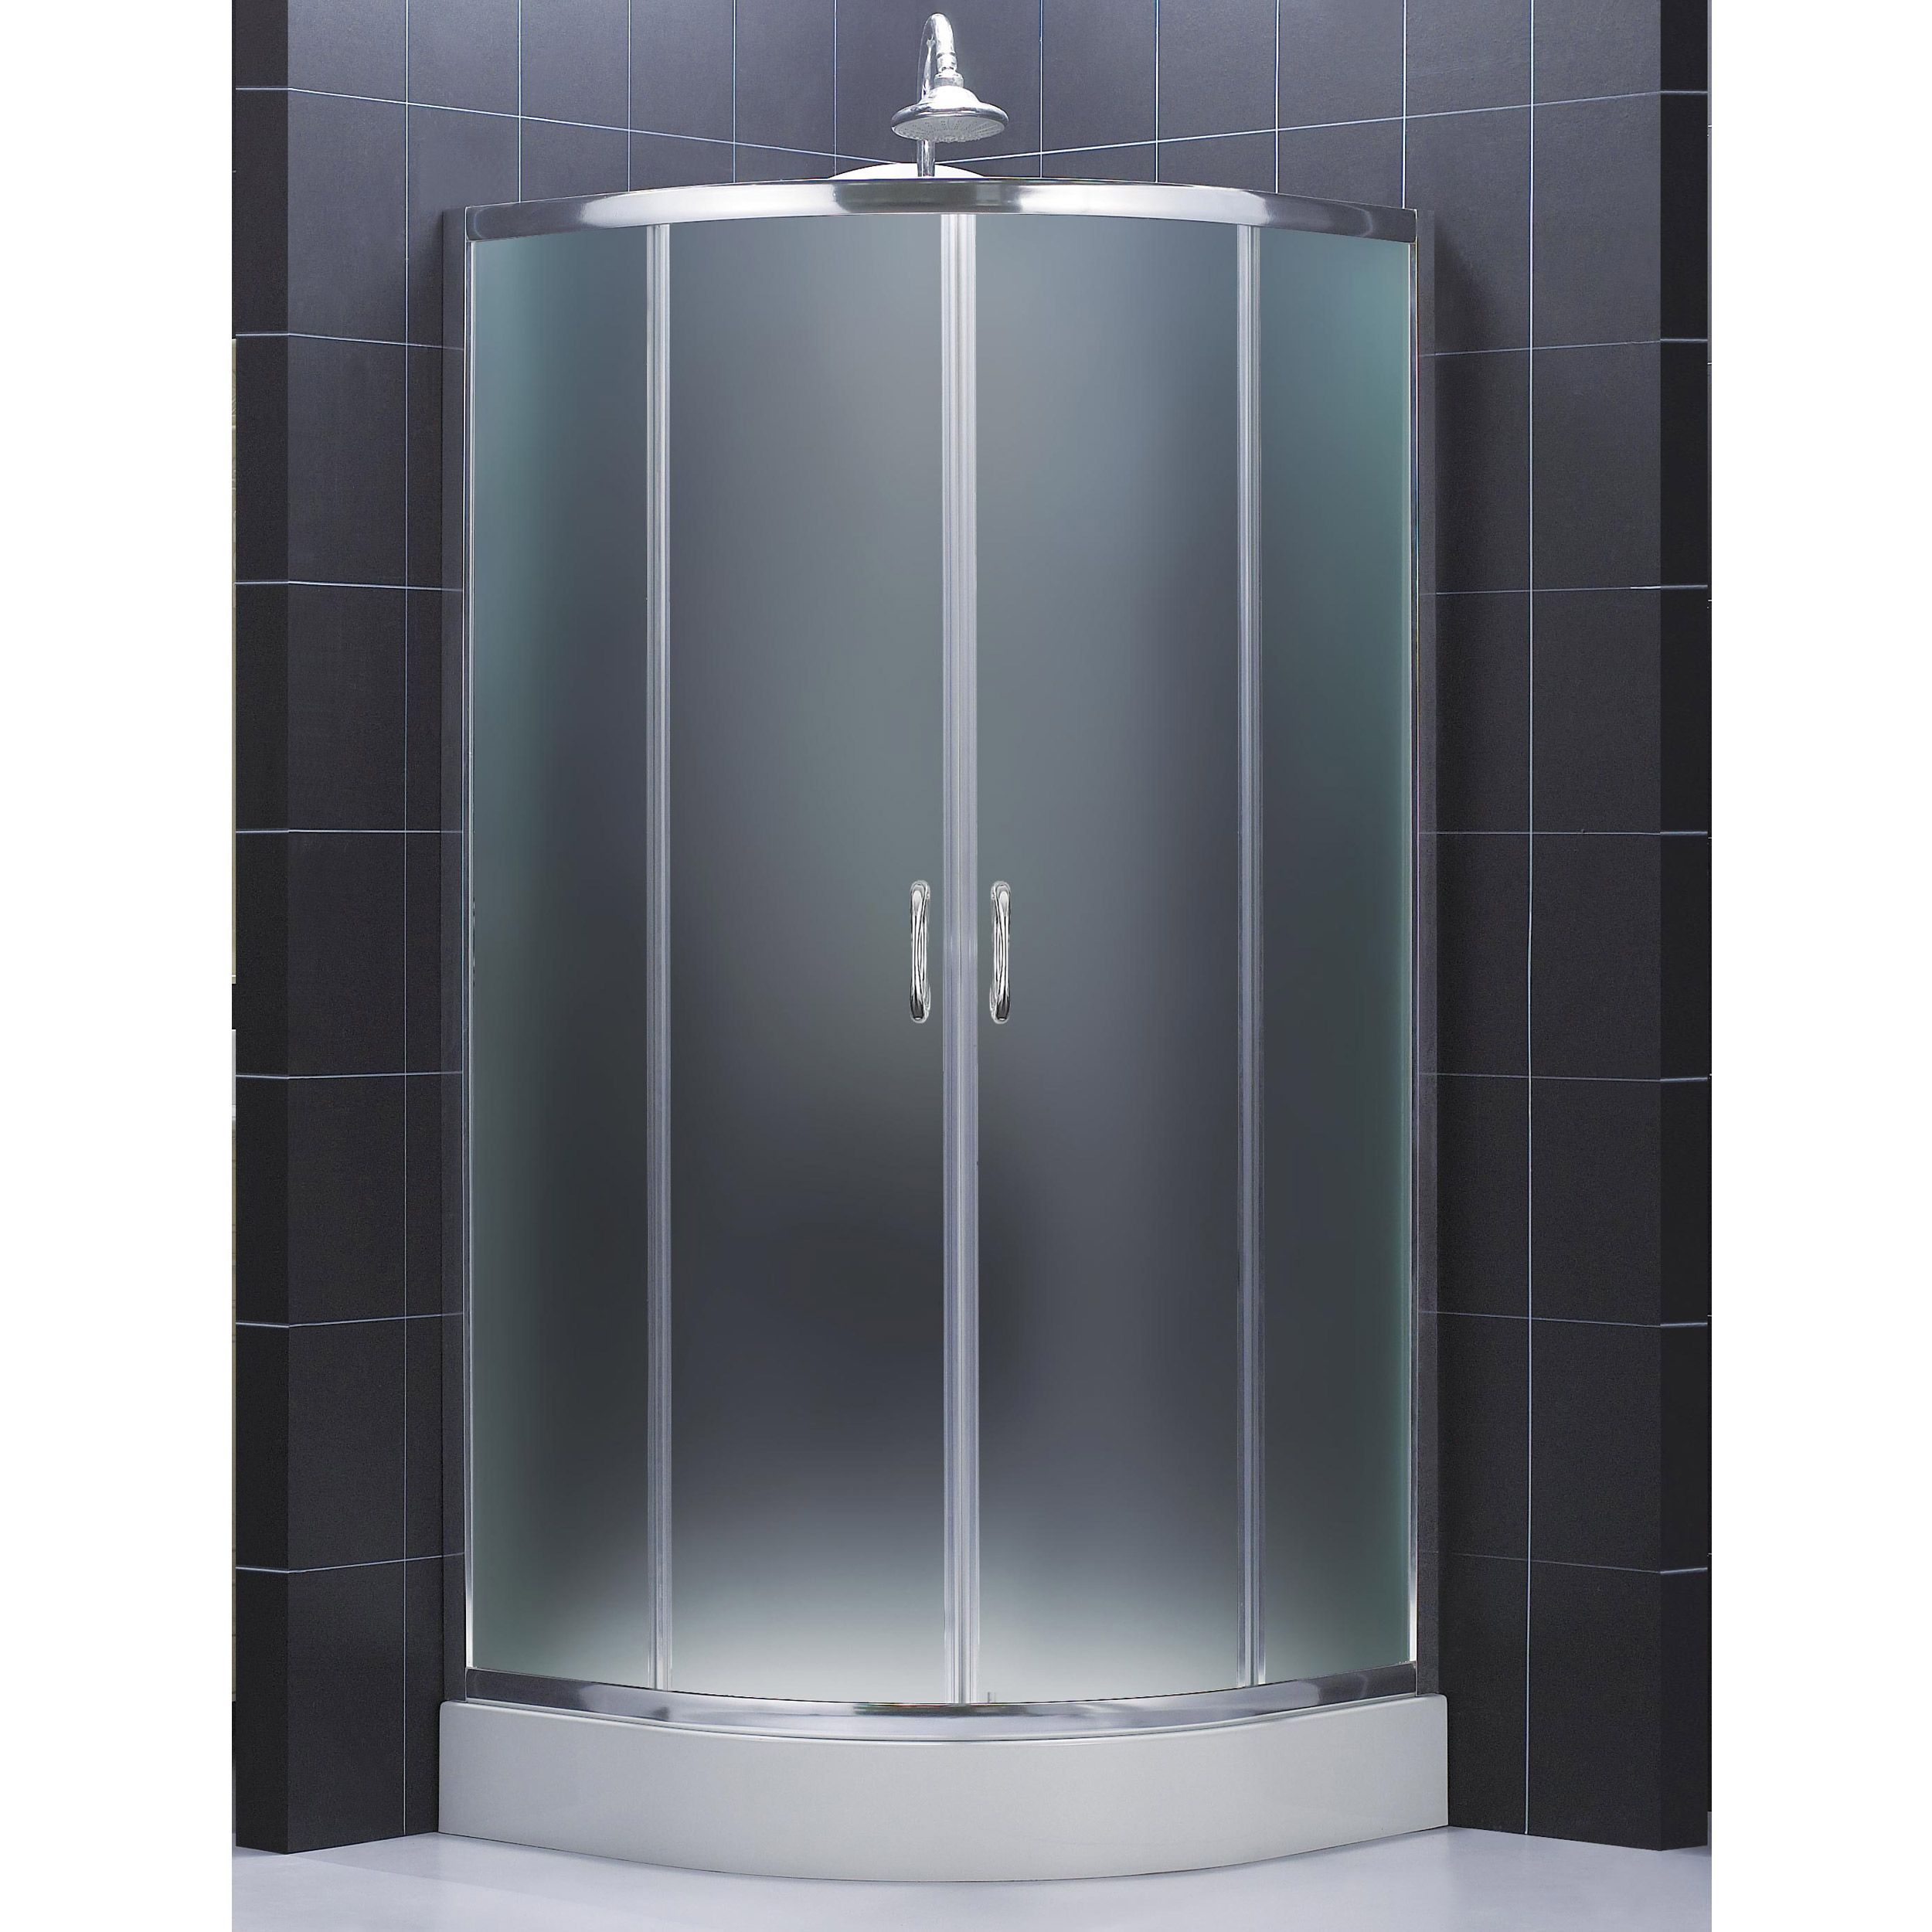 36 x 36 corner shower kit. dreamline prime frameless sliding shower enclosure and slimline 36 x quarter round floor corner kit l